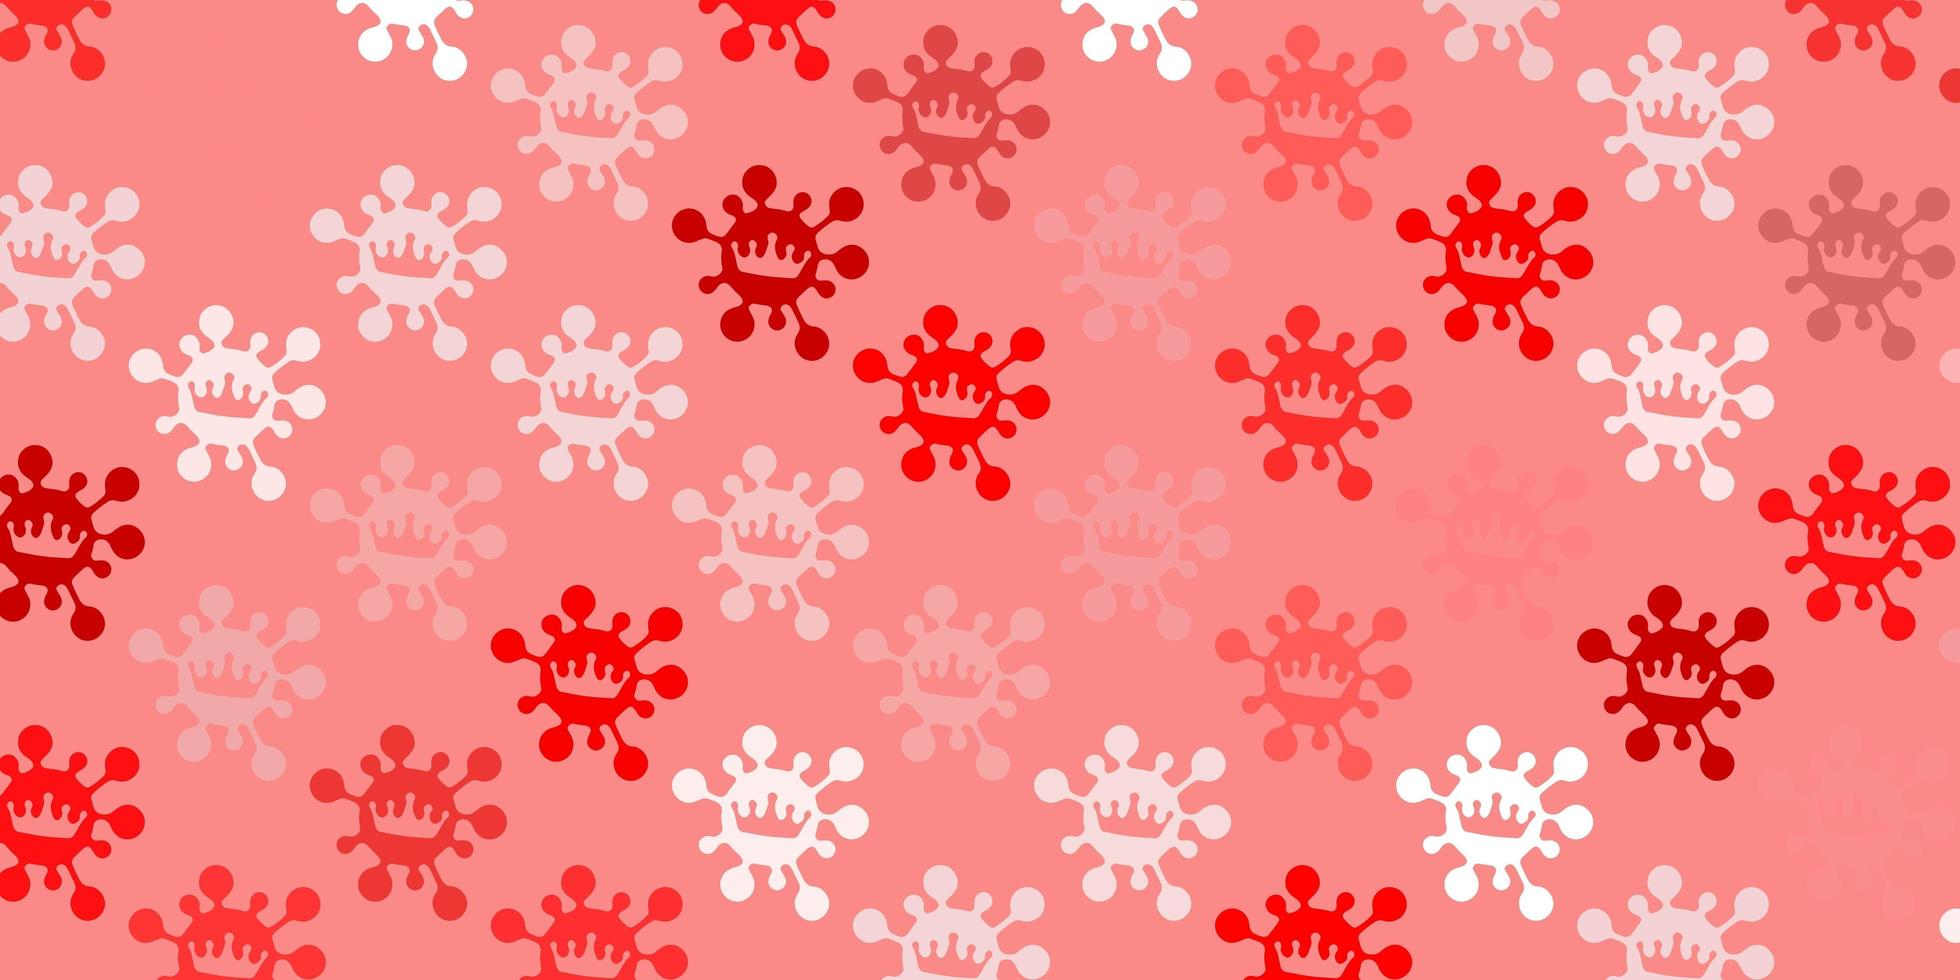 Light red backdrop with virus symbols. vector